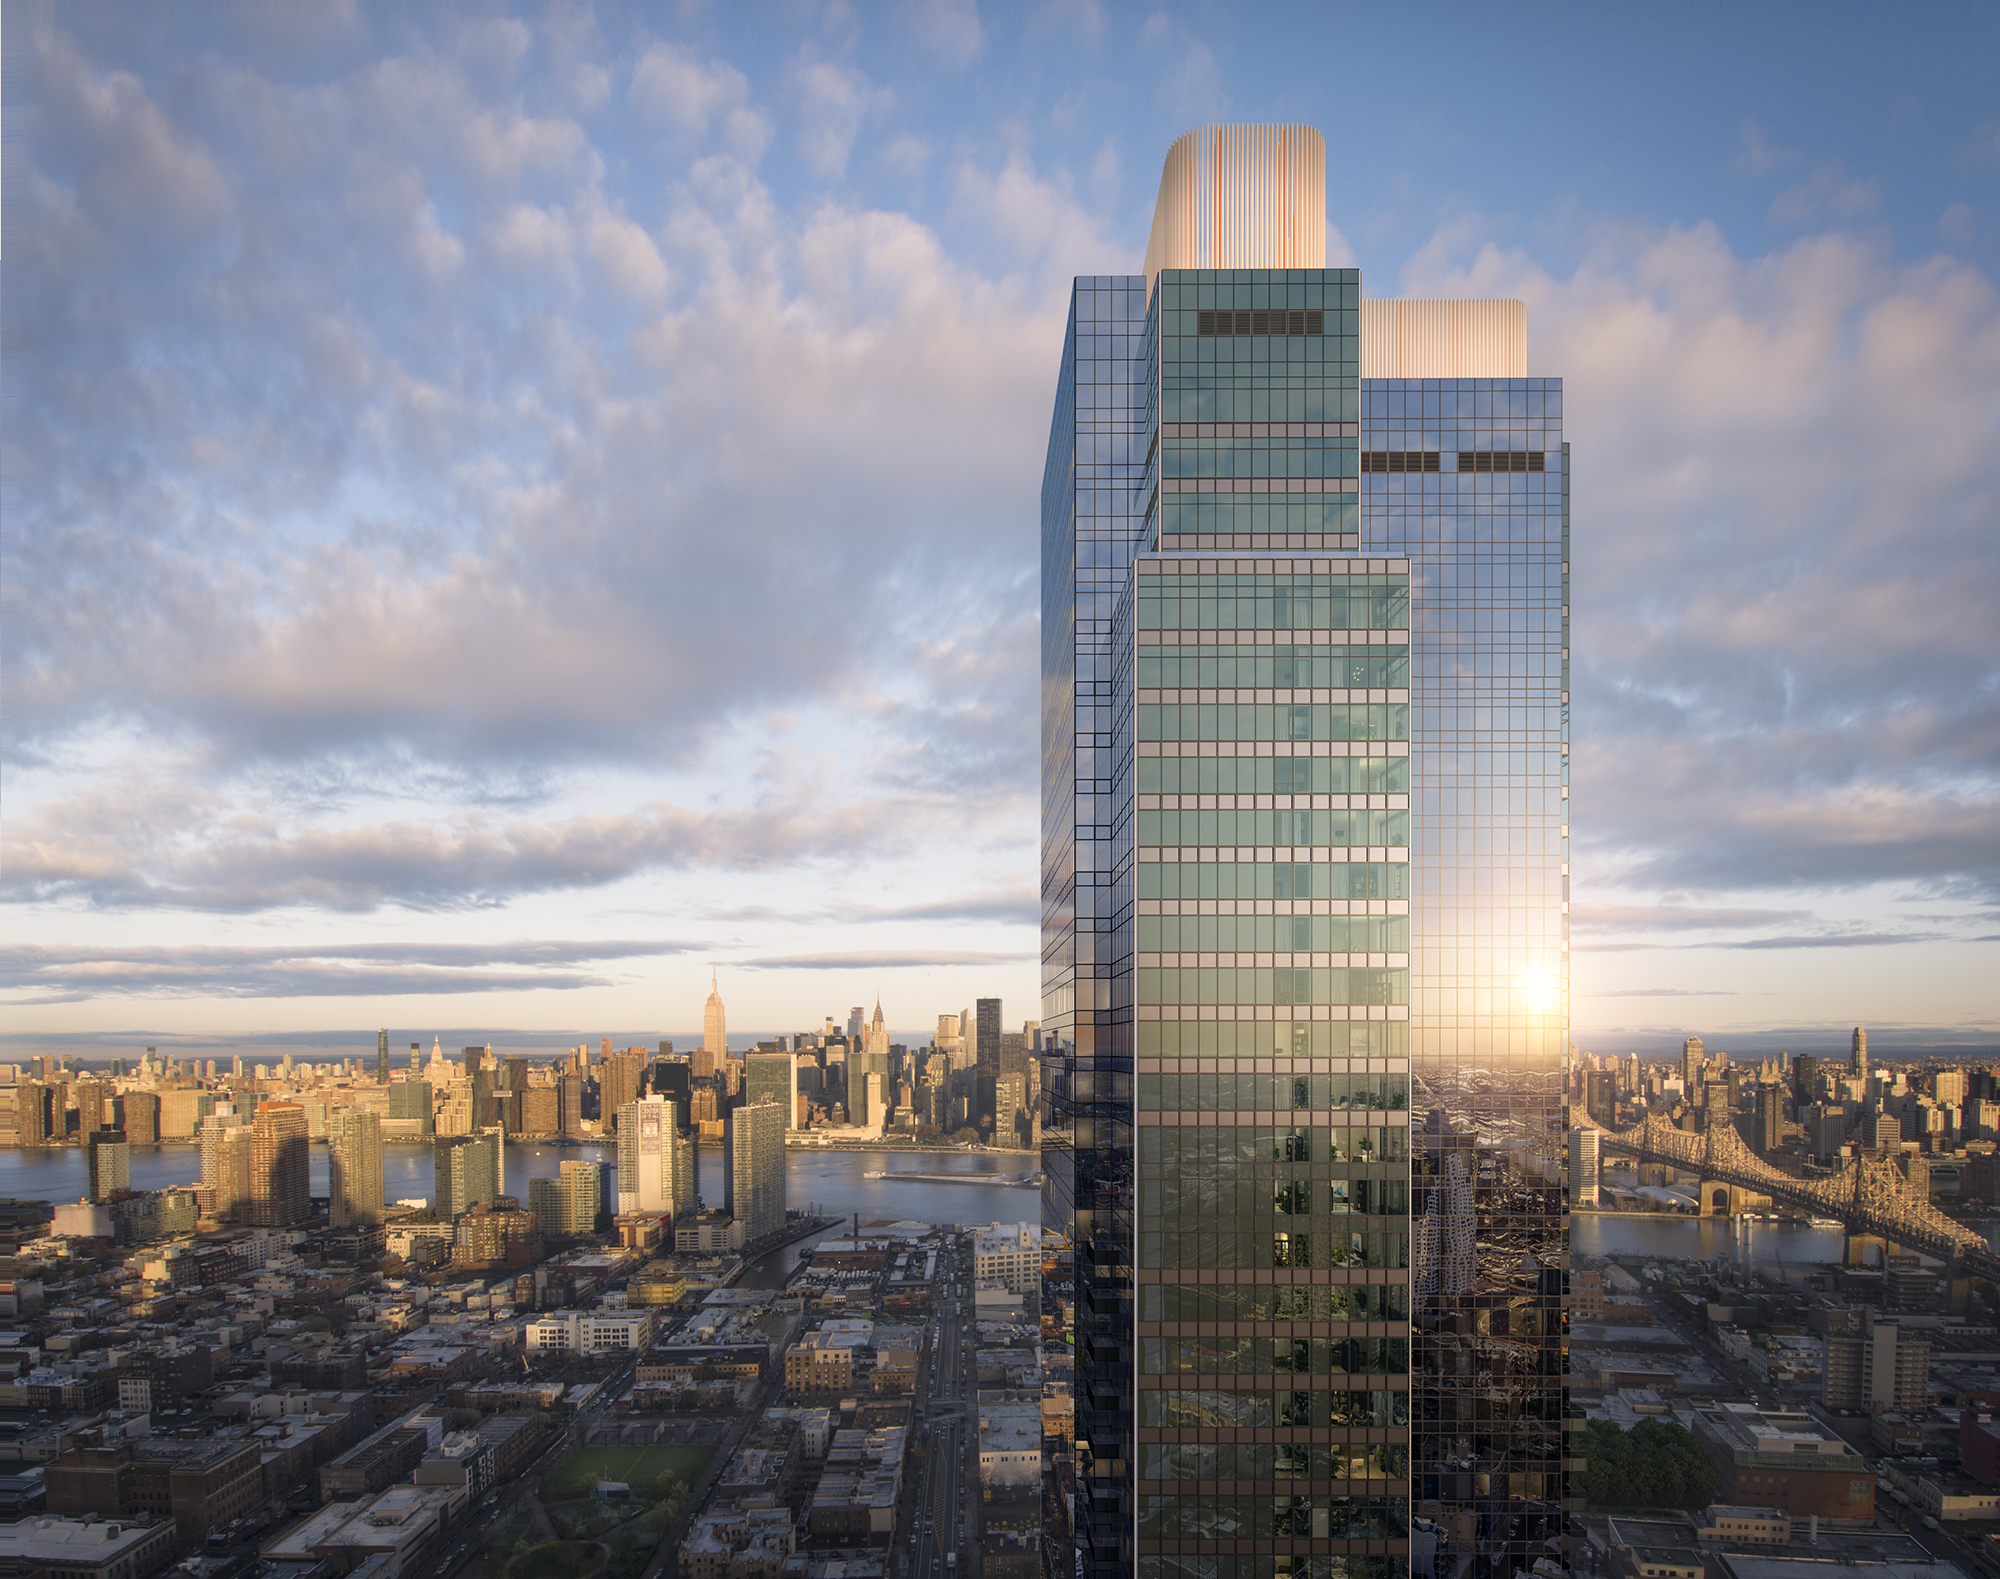 Tallest skyscraper in Queens tops out at 778 feet